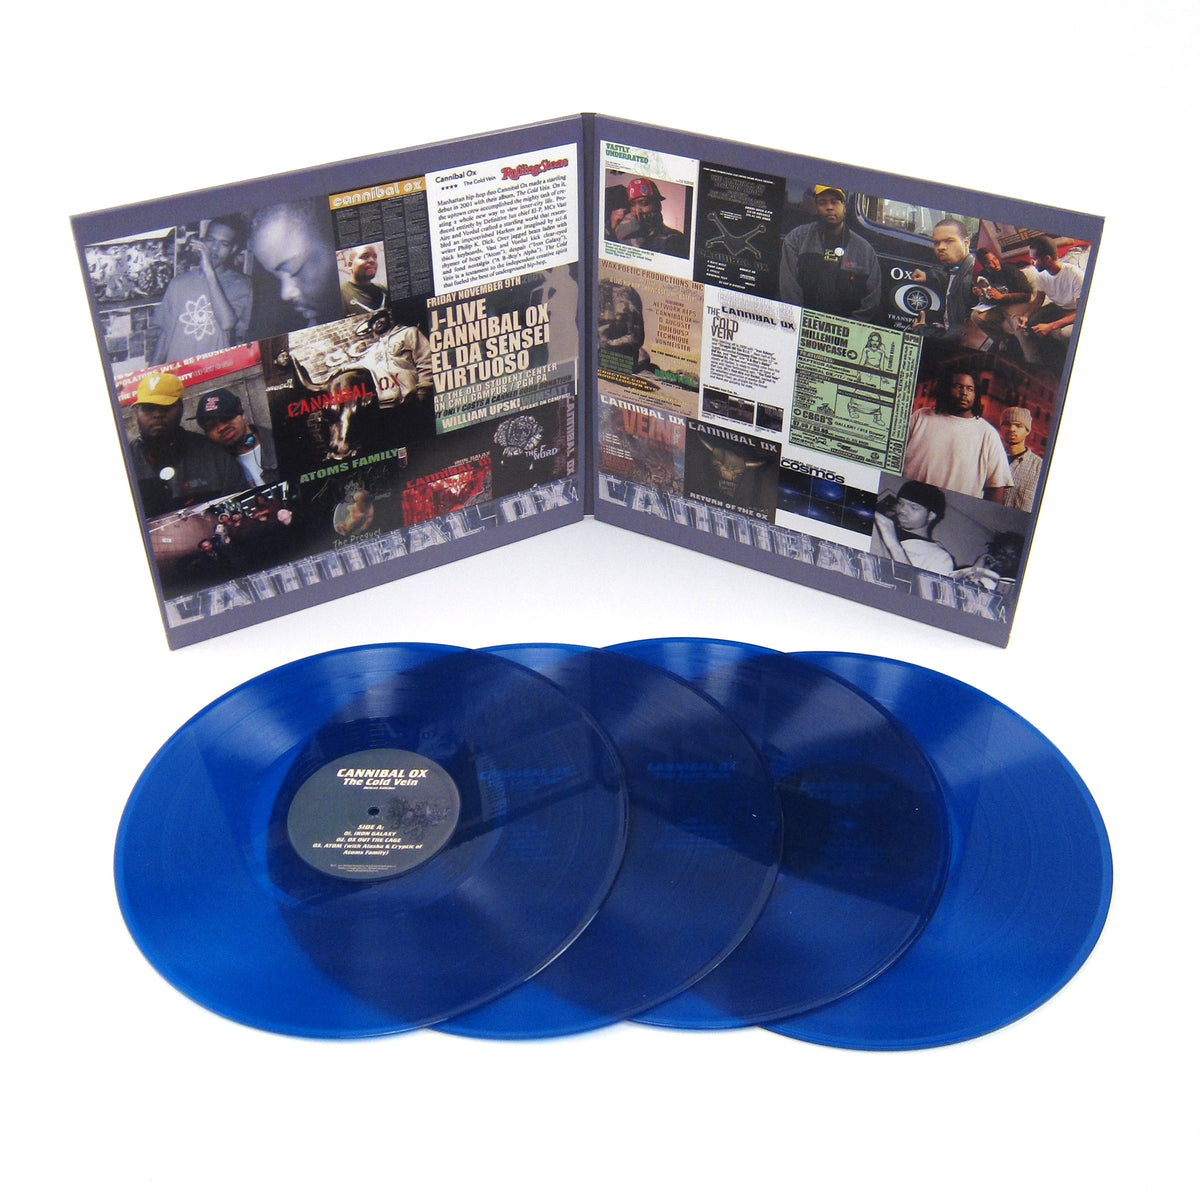 Cannibal Ox: The Cold Vein Deluxe Edition (Colored Vinyl) Vinyl 4LP